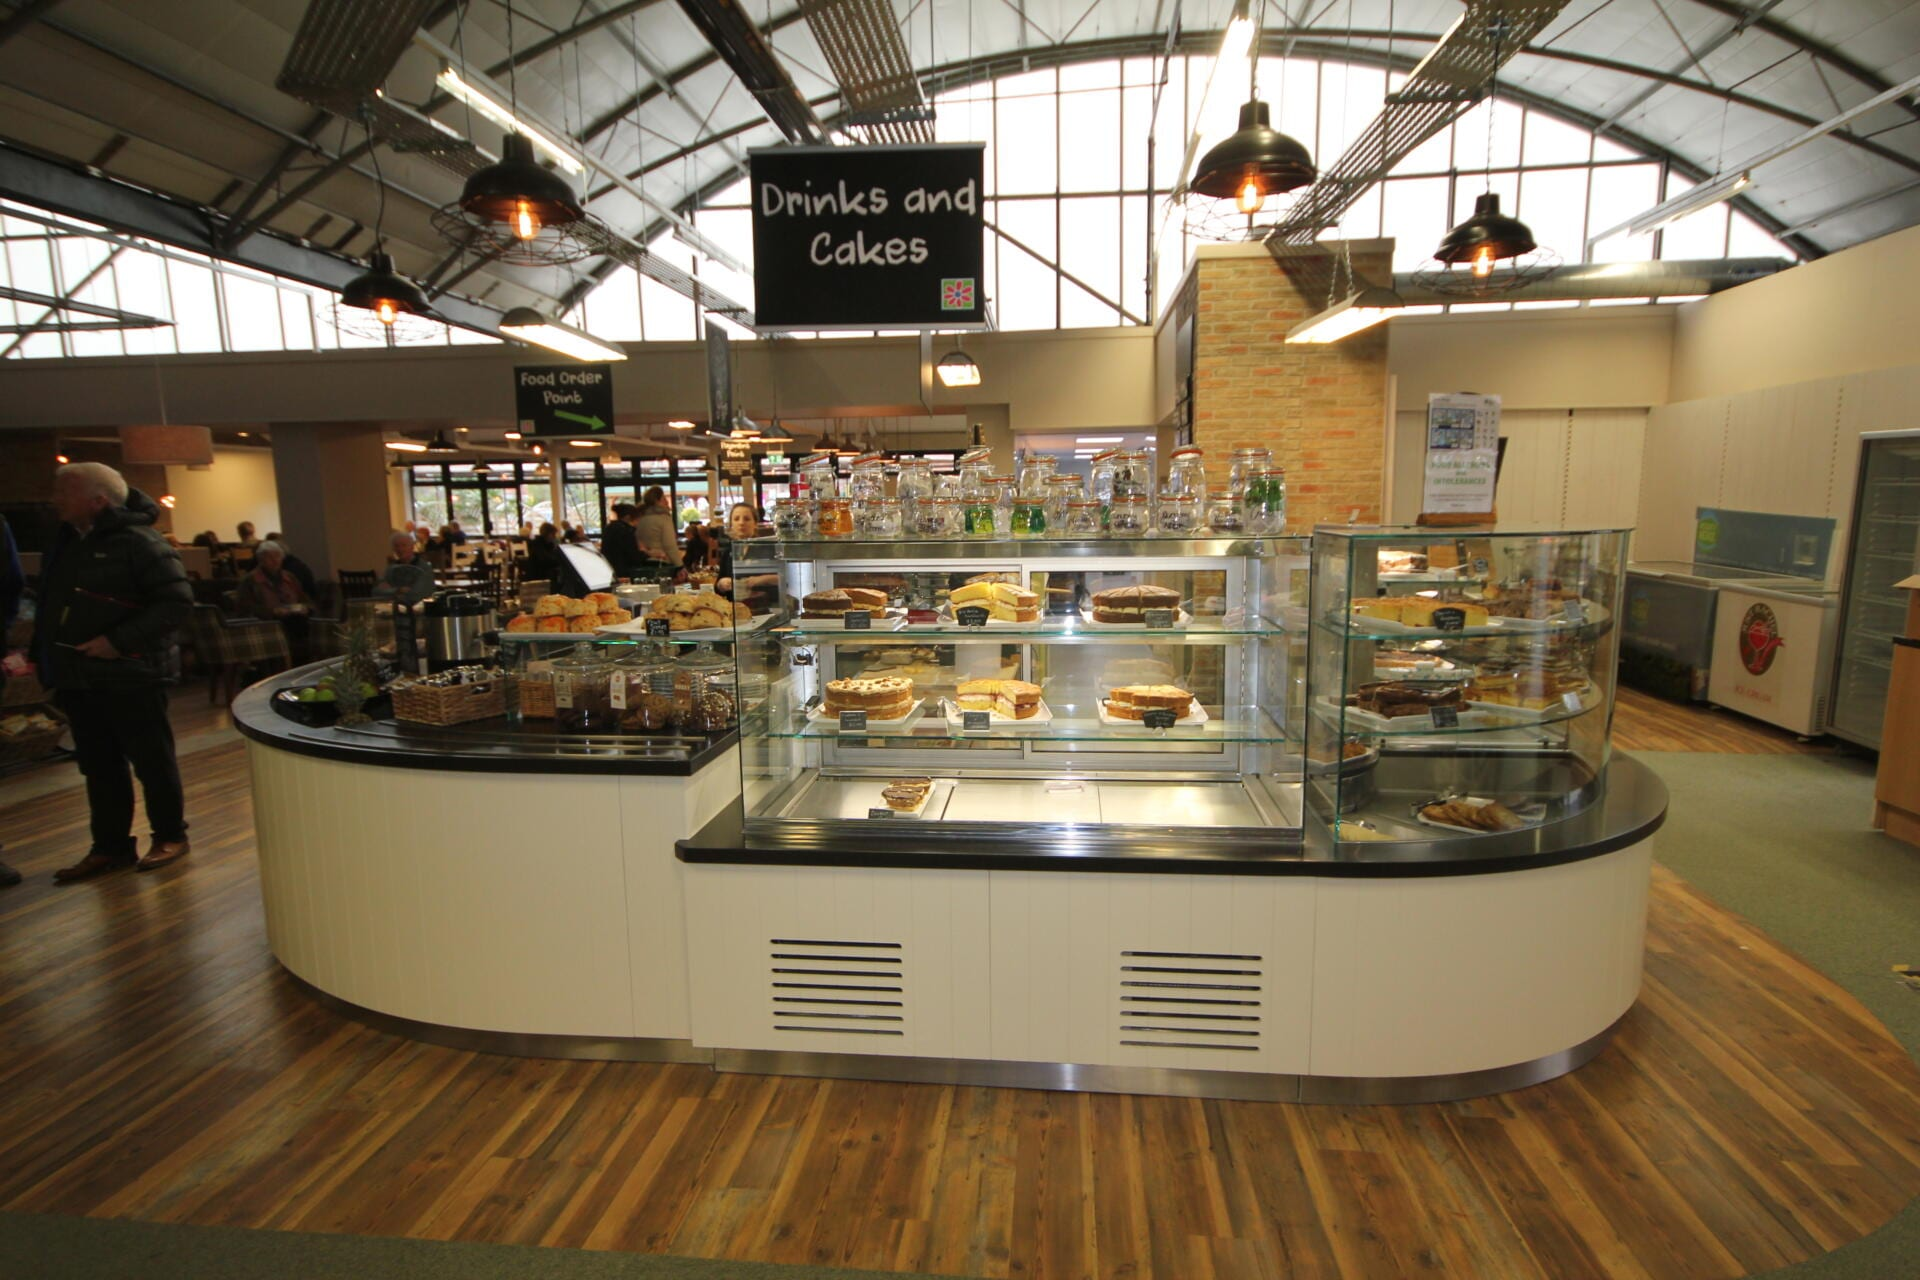 St Peters (servery counter, ambient patisserie display)